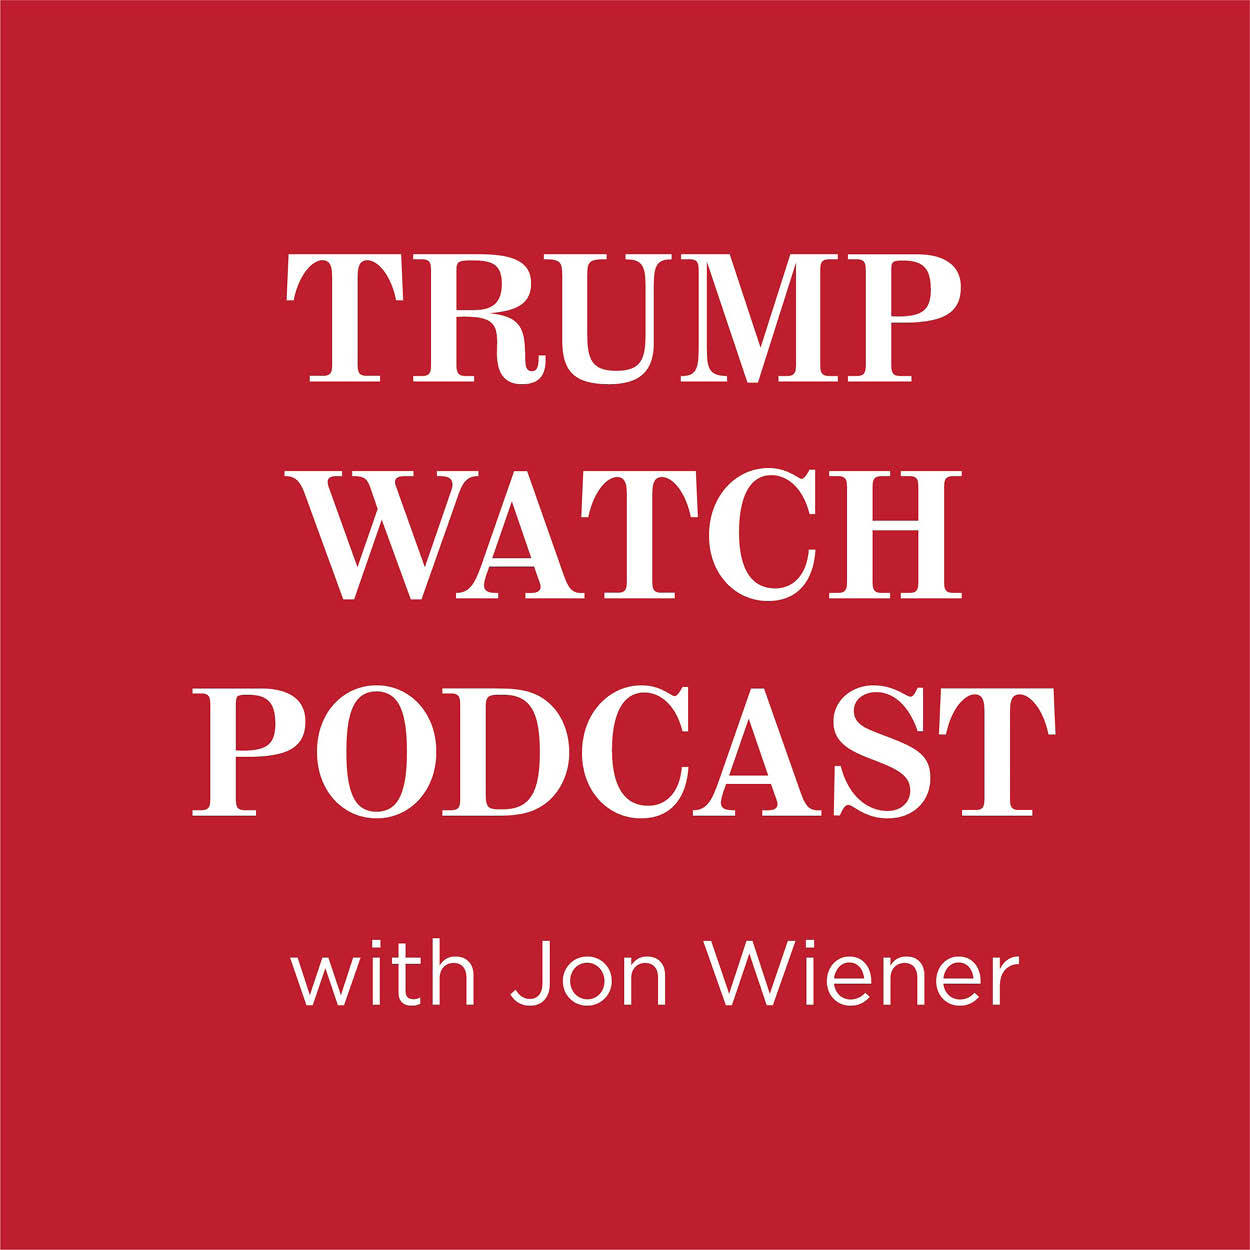 Trump Watch Podcast logo